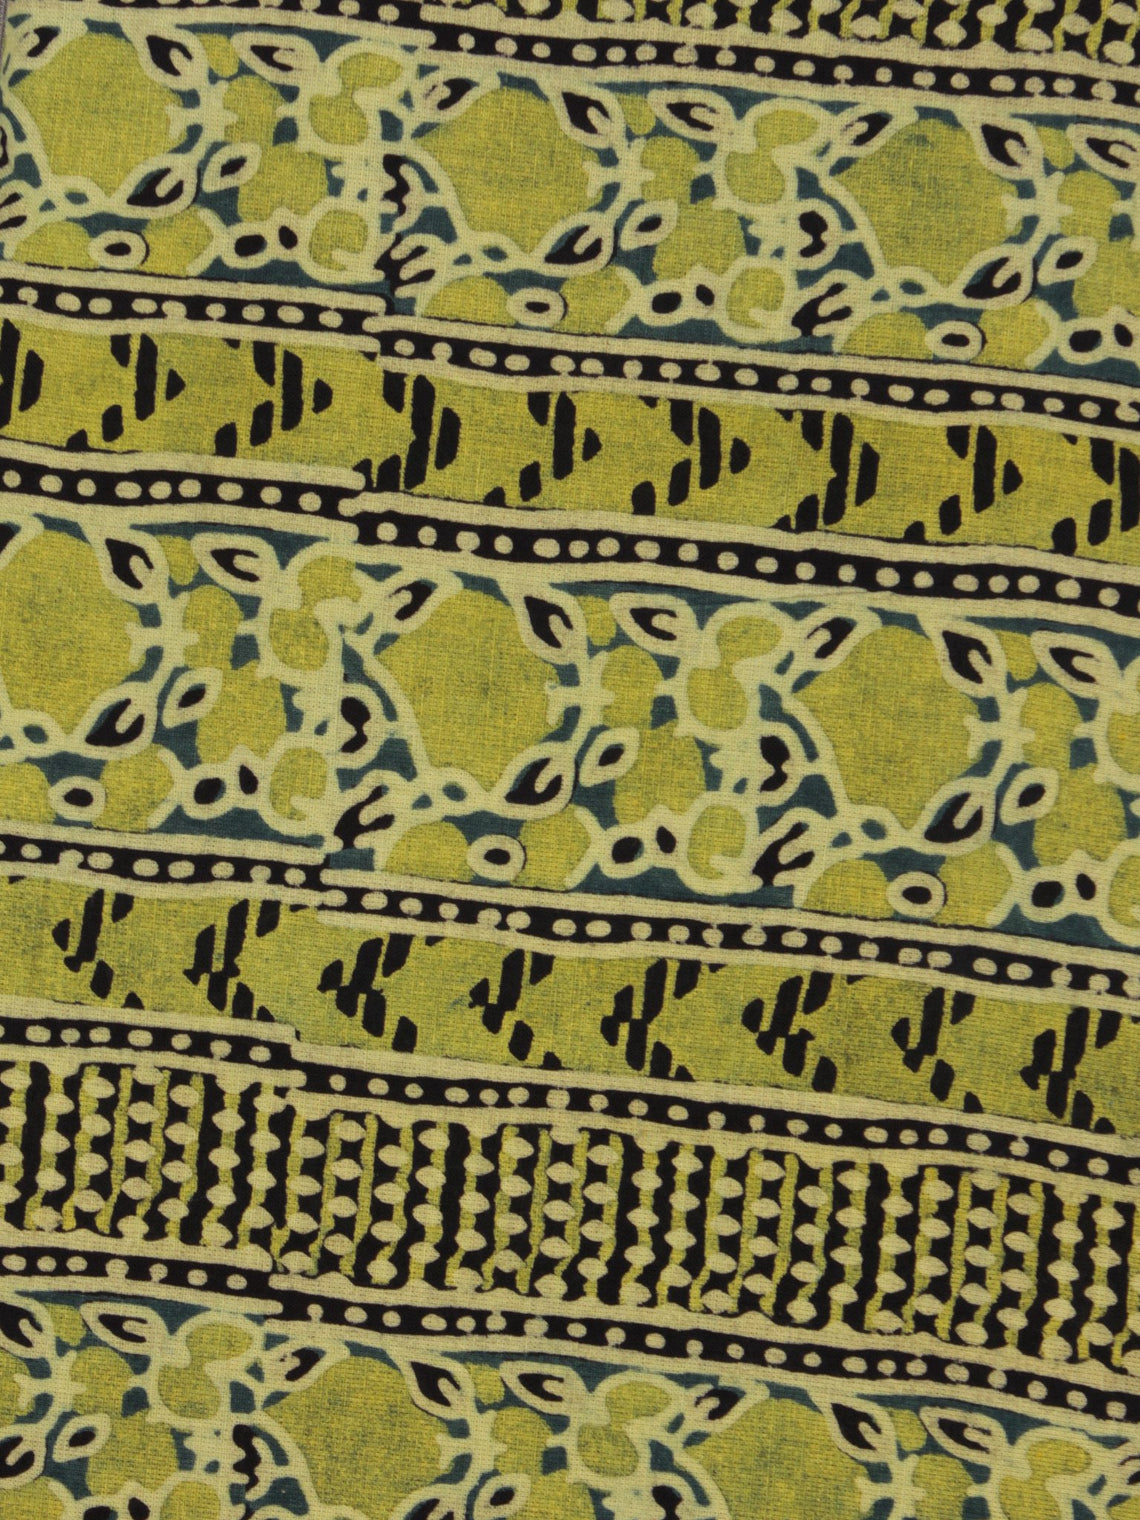 Lime Green Ivory Blue Ajrakh Printed Cotton Fabric Per Meter - F003F868